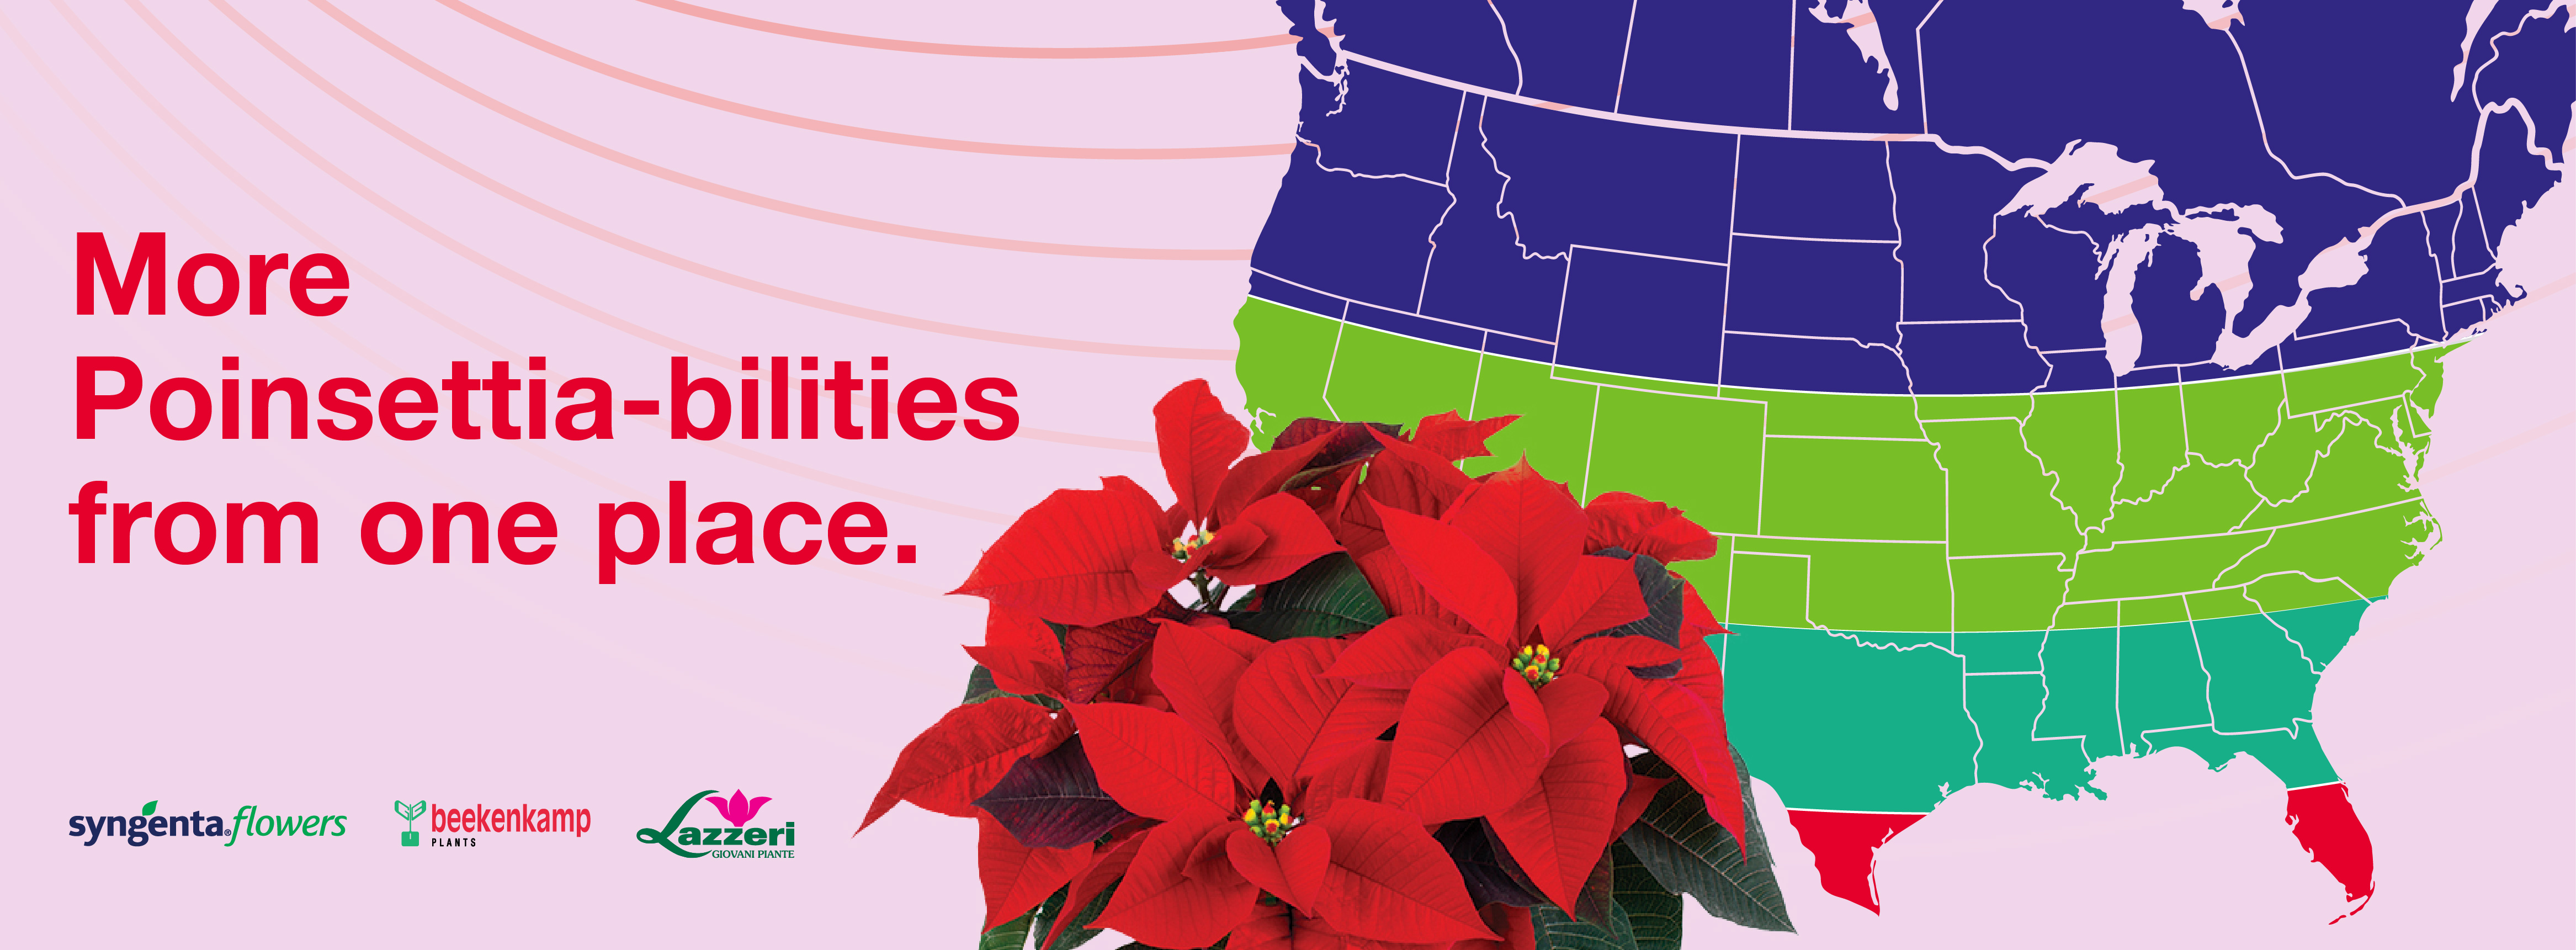 Poinsettias by Regions